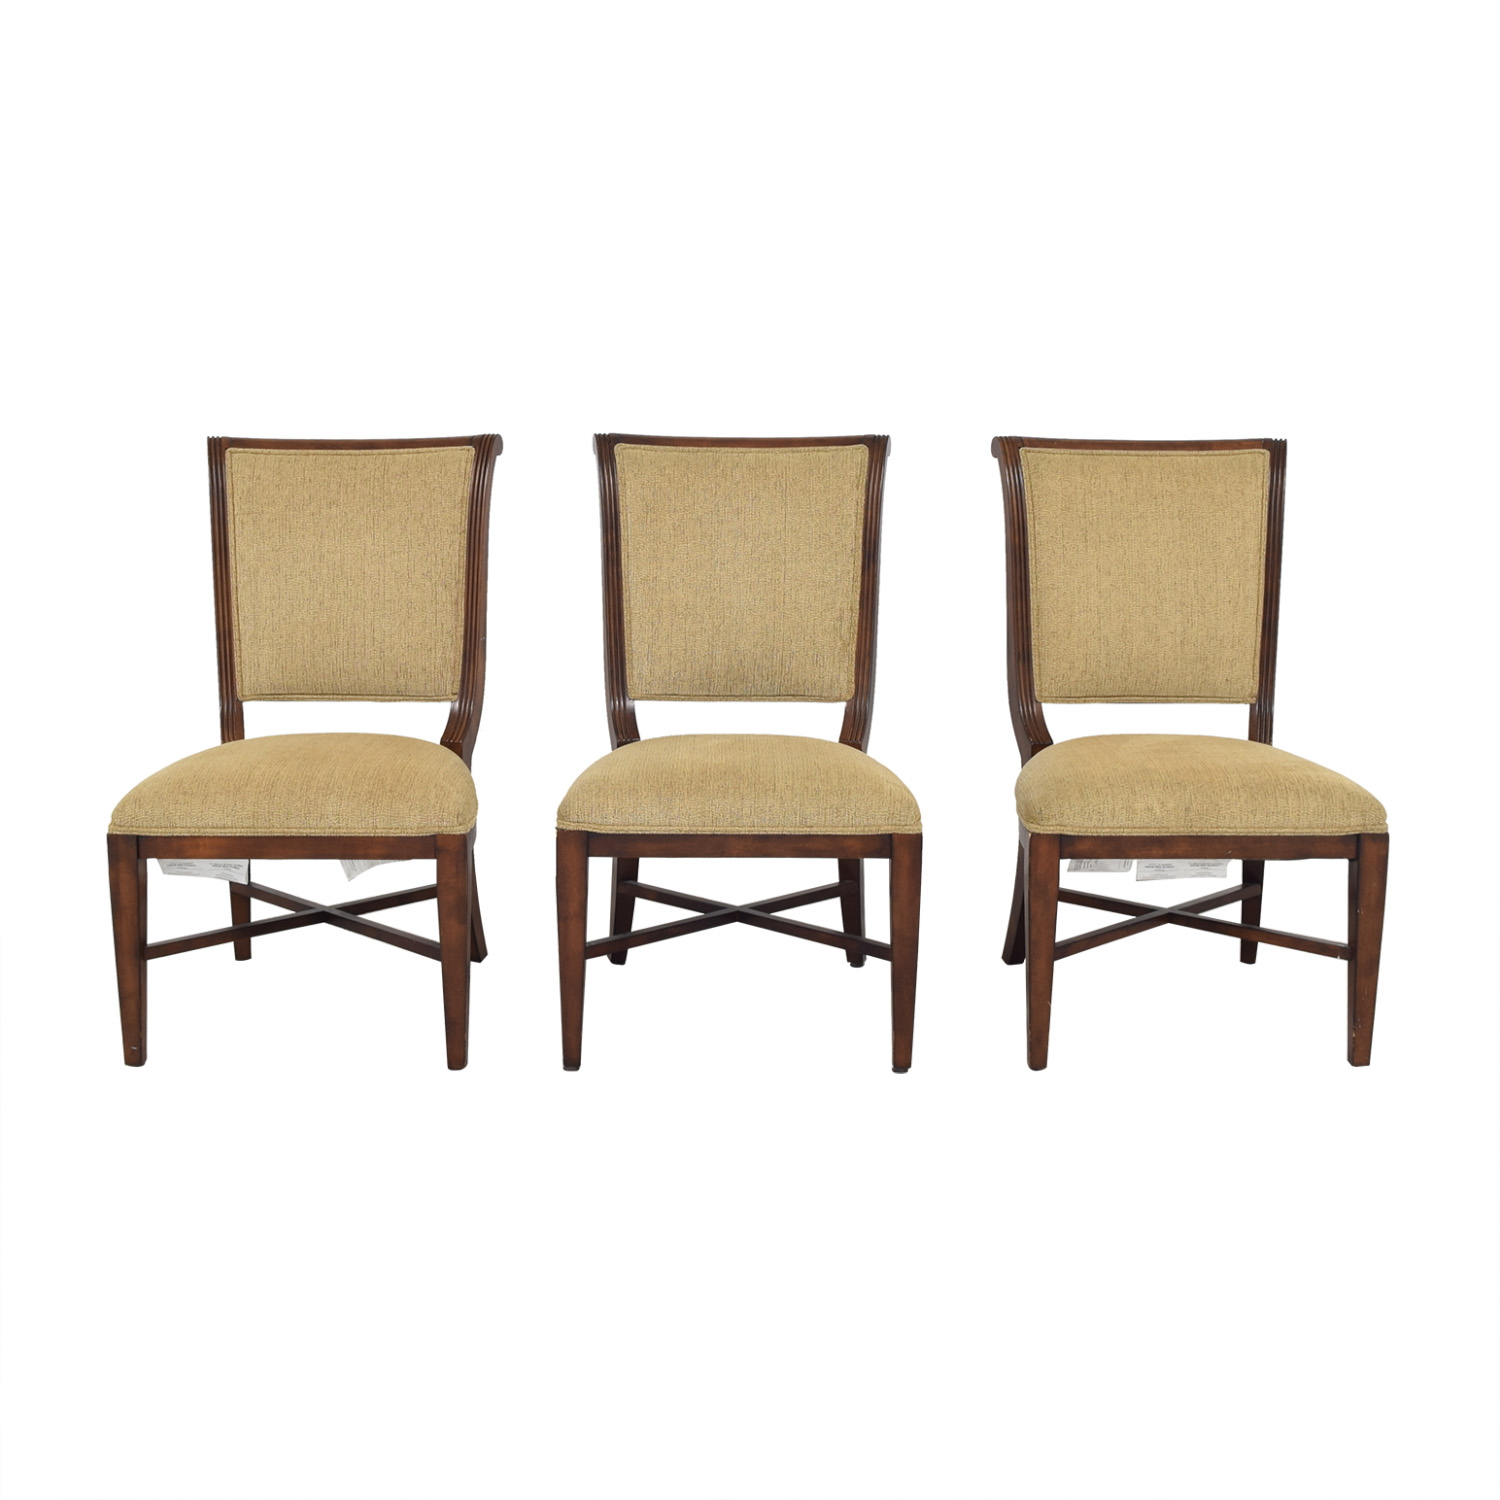 Lexington Furniture Upholstered Dining Chairs Lexington Furniture